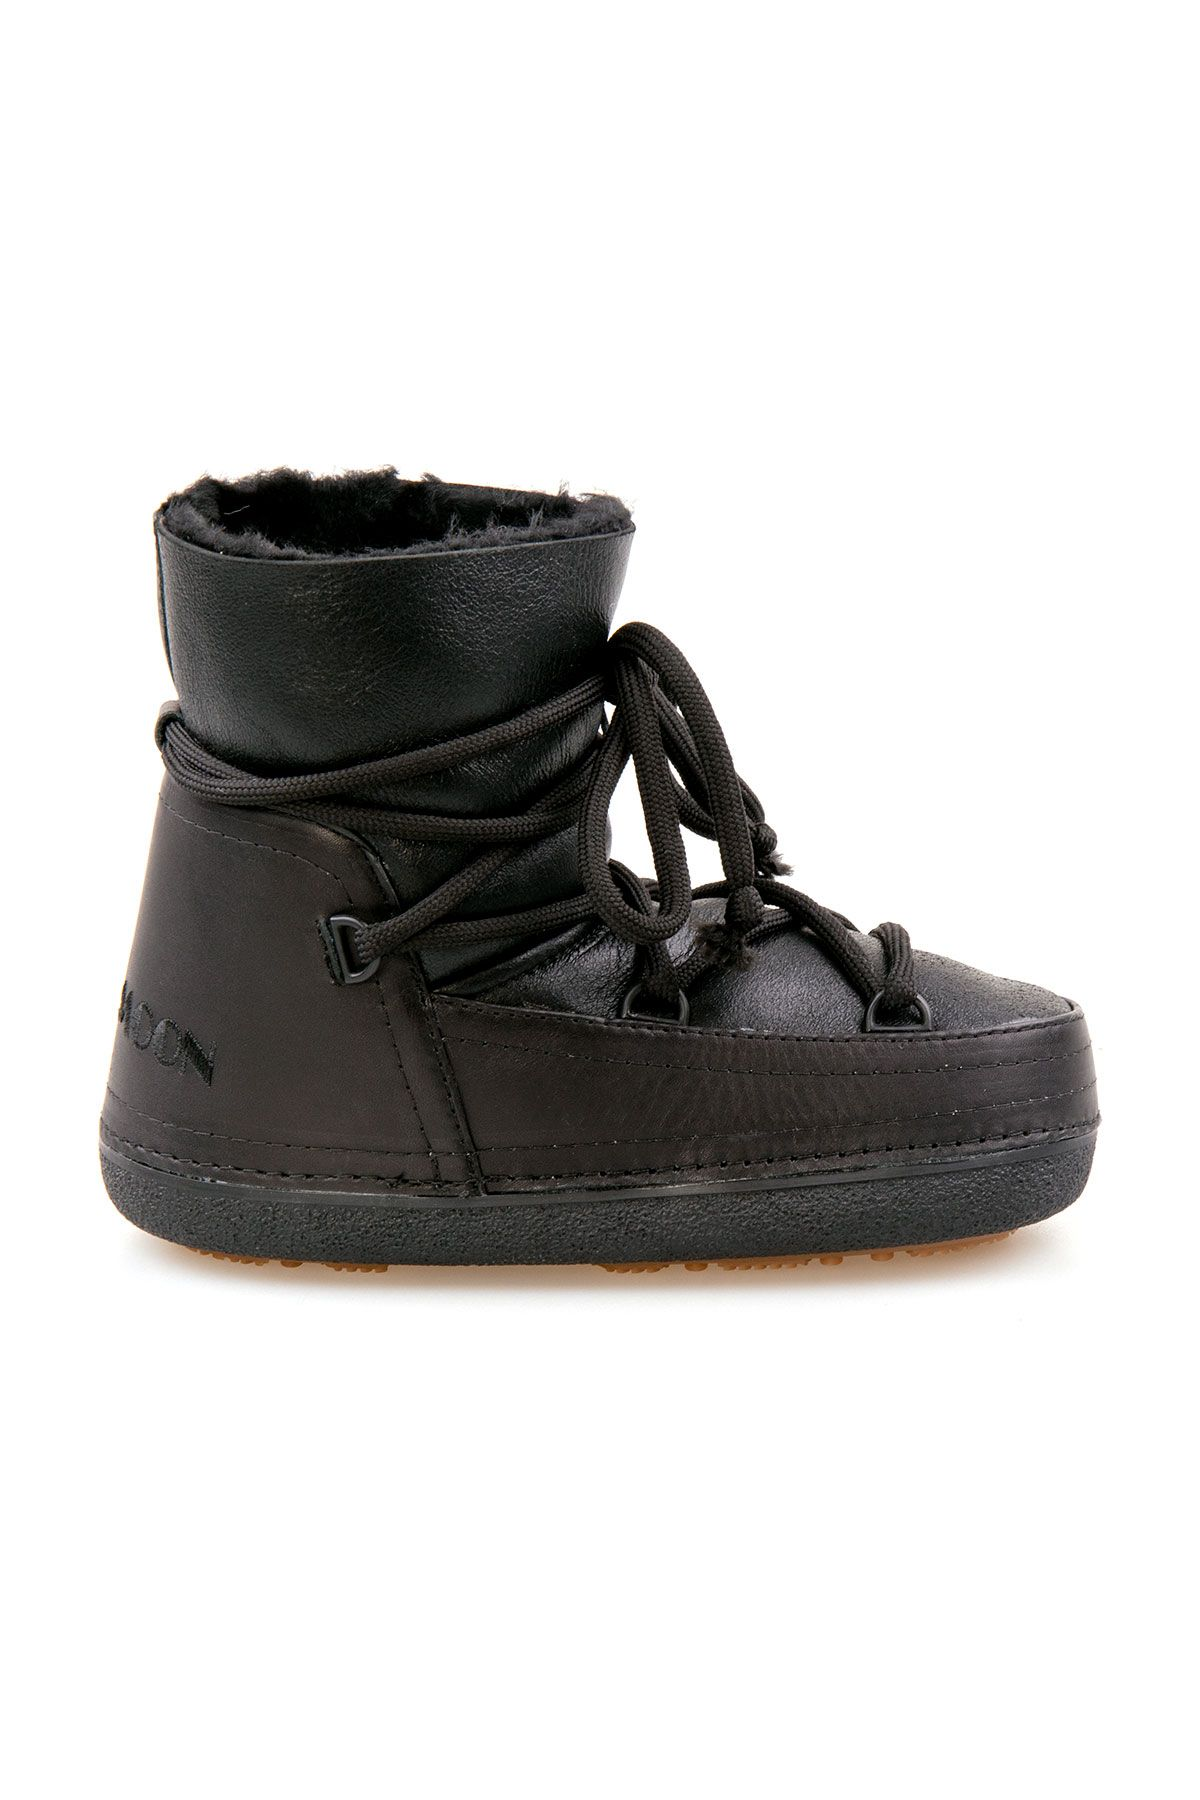 Cool Moon Genuine Leather Sheepskin Snow Boots 351014 Black